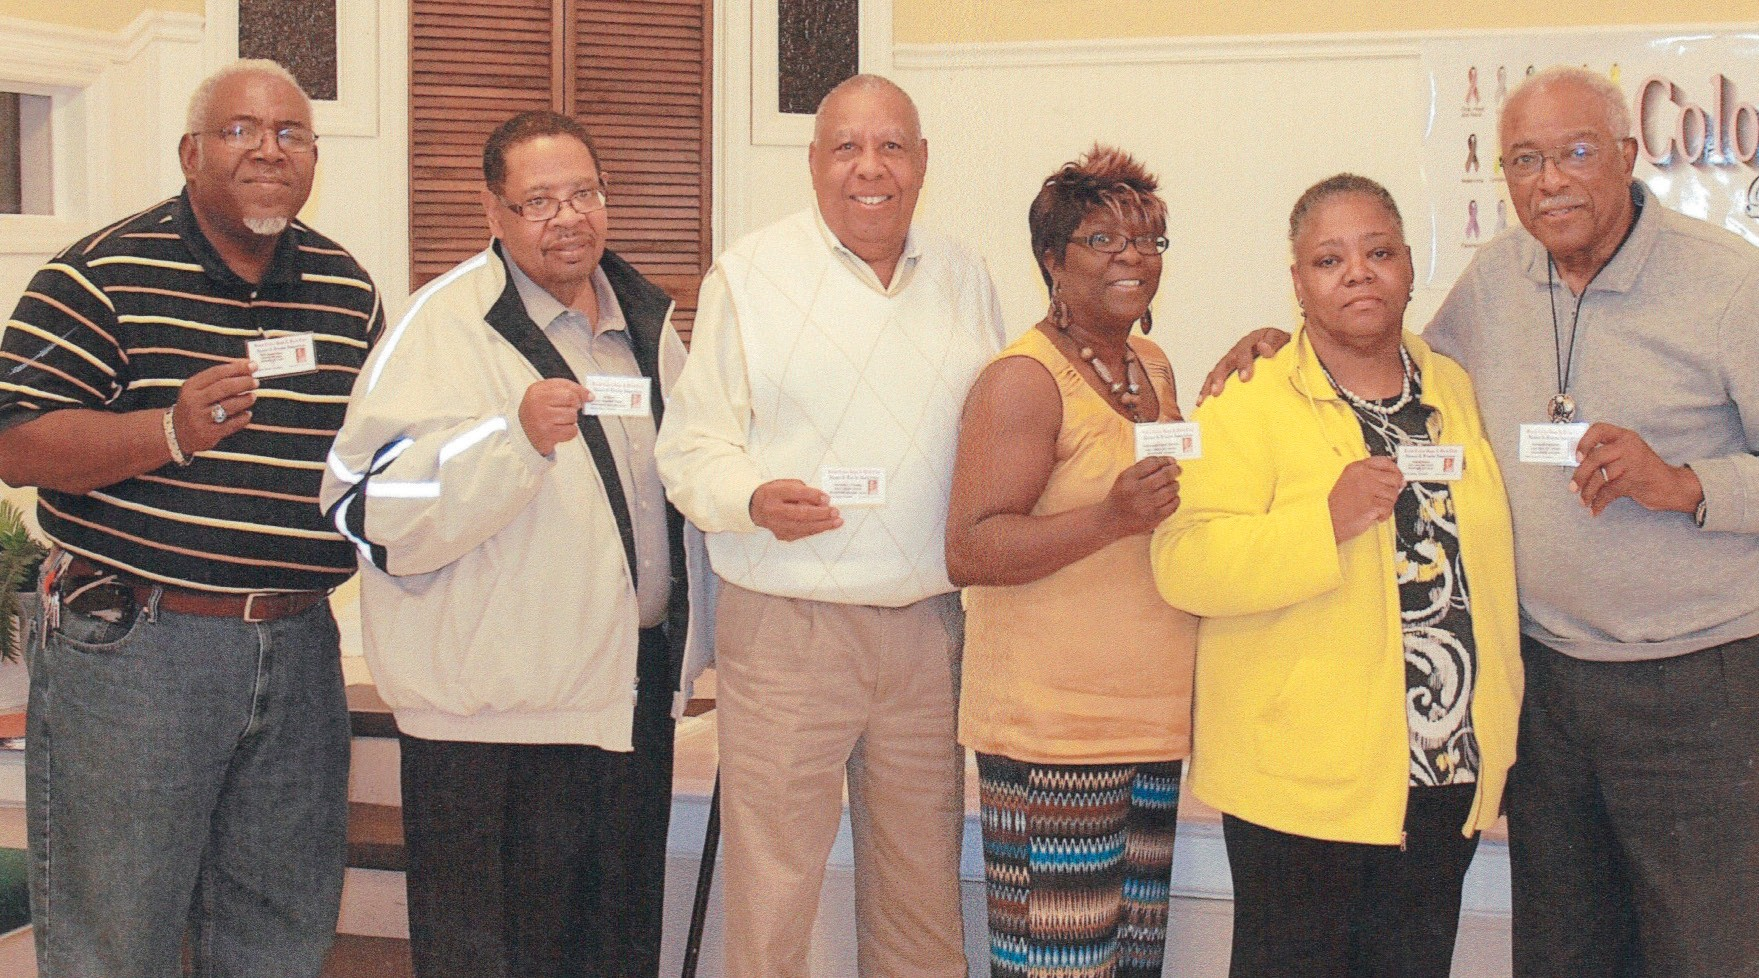 (Membership Members L to R:) Elder Raymond Rouse, Floyd Adams, Comm. James J. Holmes, Janie Brooks, Charlena Brown and Walter B. Simmons. Not pictured: Rosemary Banks, Charlie Brown, Karen Datts, Lawrence Hutchins, Eugene Johnson, George Nixon, Joe rivers James Stewart and Vergie Williams.